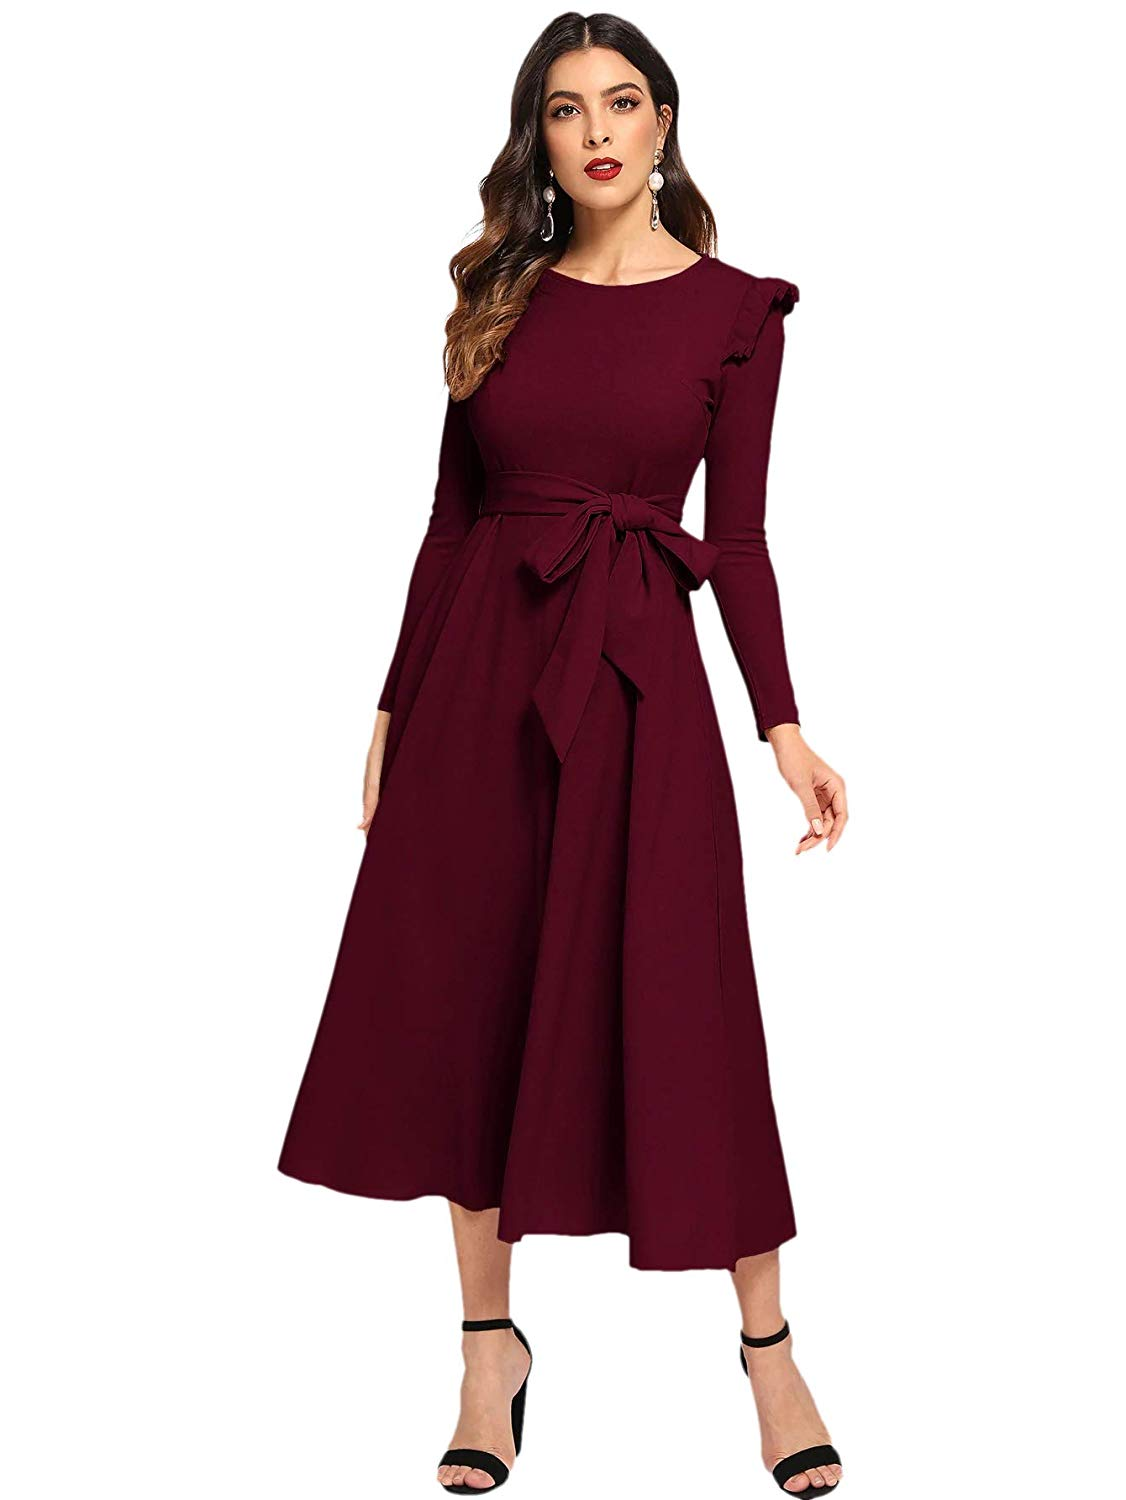 15 Stylish Dresses From Amazon Belted Dress